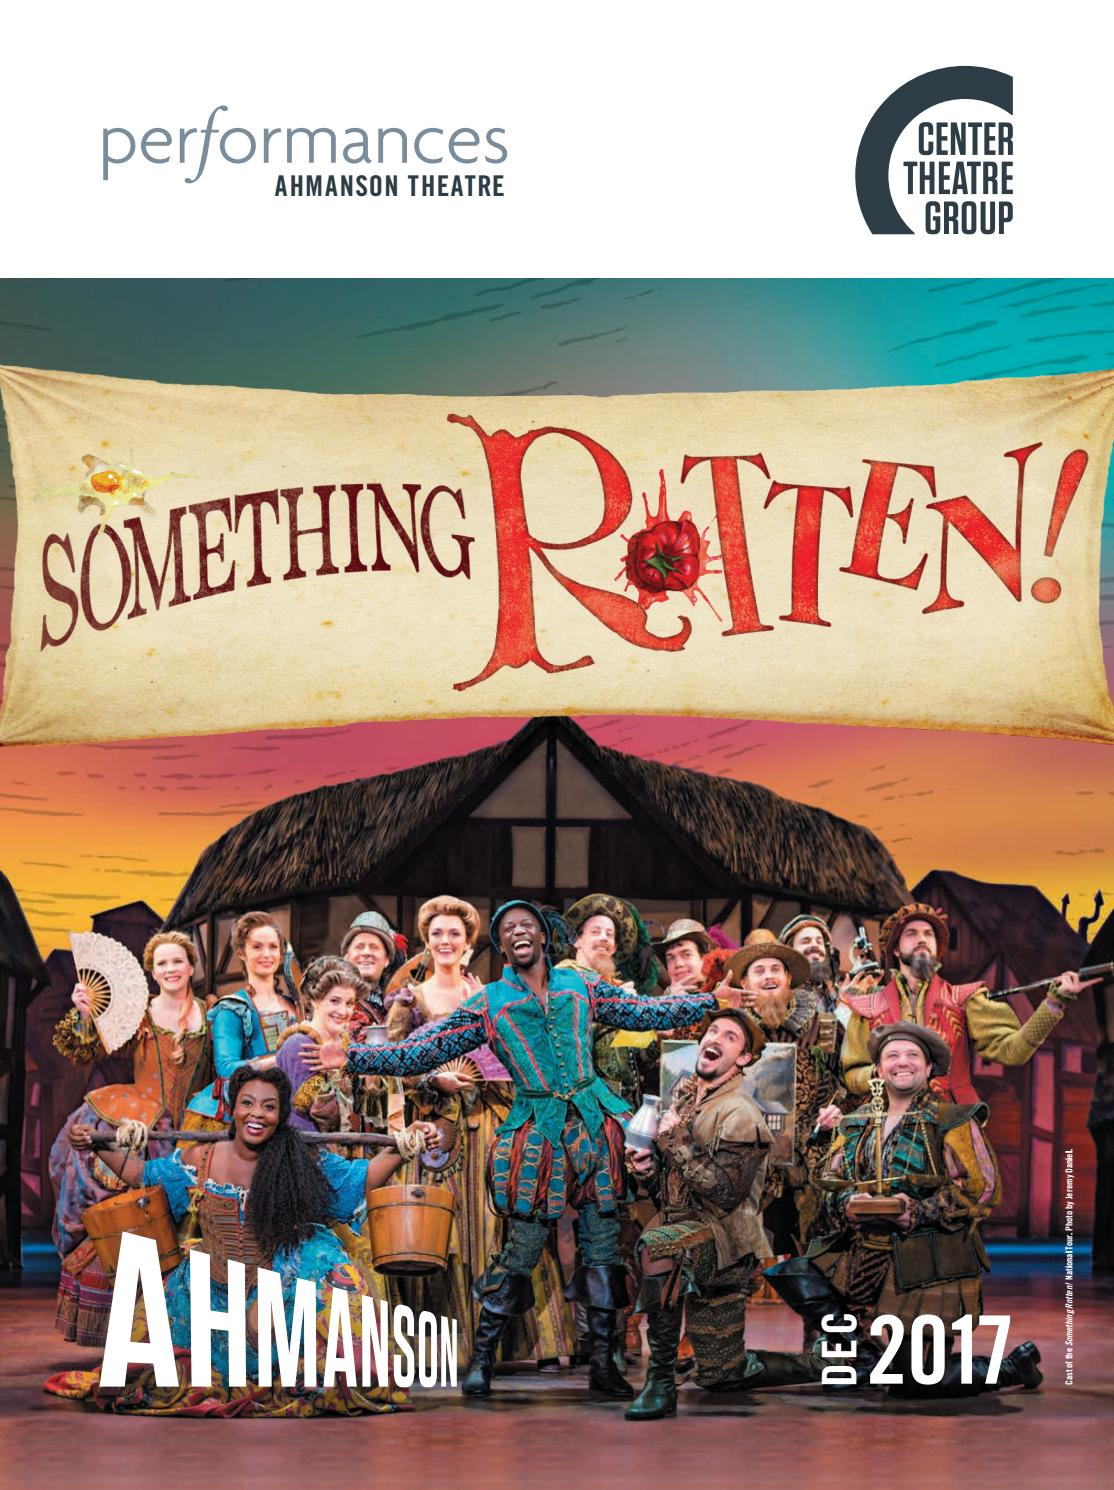 Something Rotten! at Center Theatre Group, Performances magazine December  2017